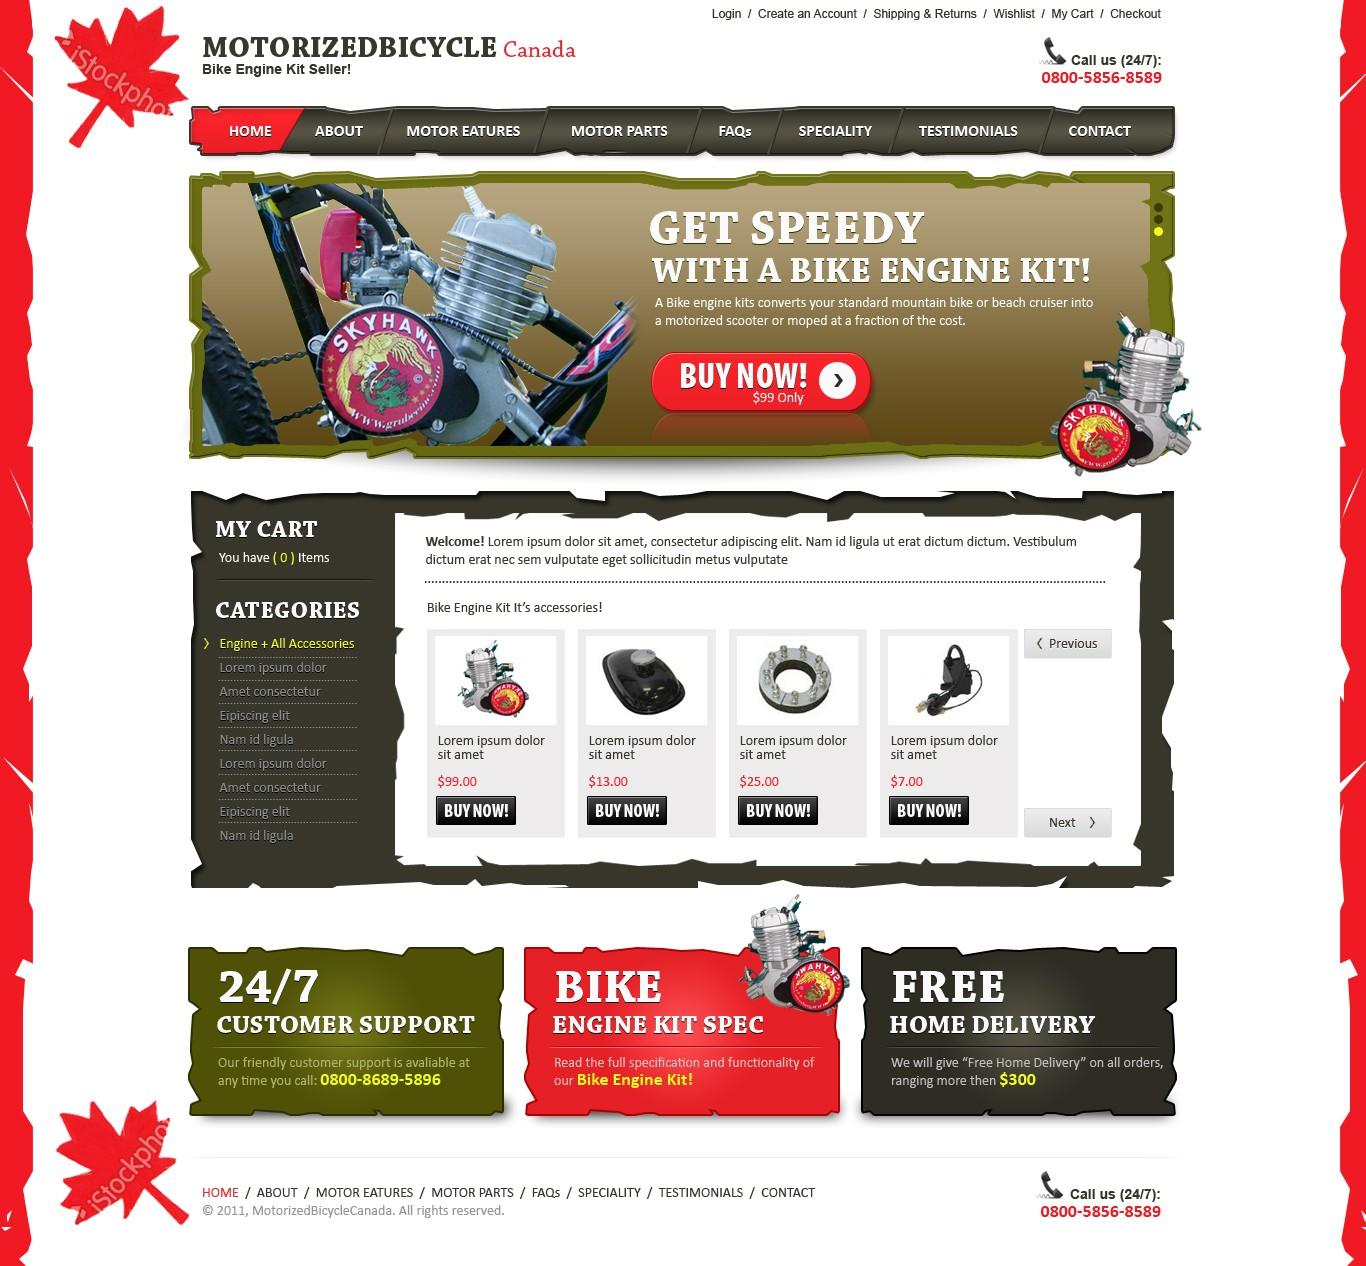 MOTORIZED BICYCLE Canada needs a new website design